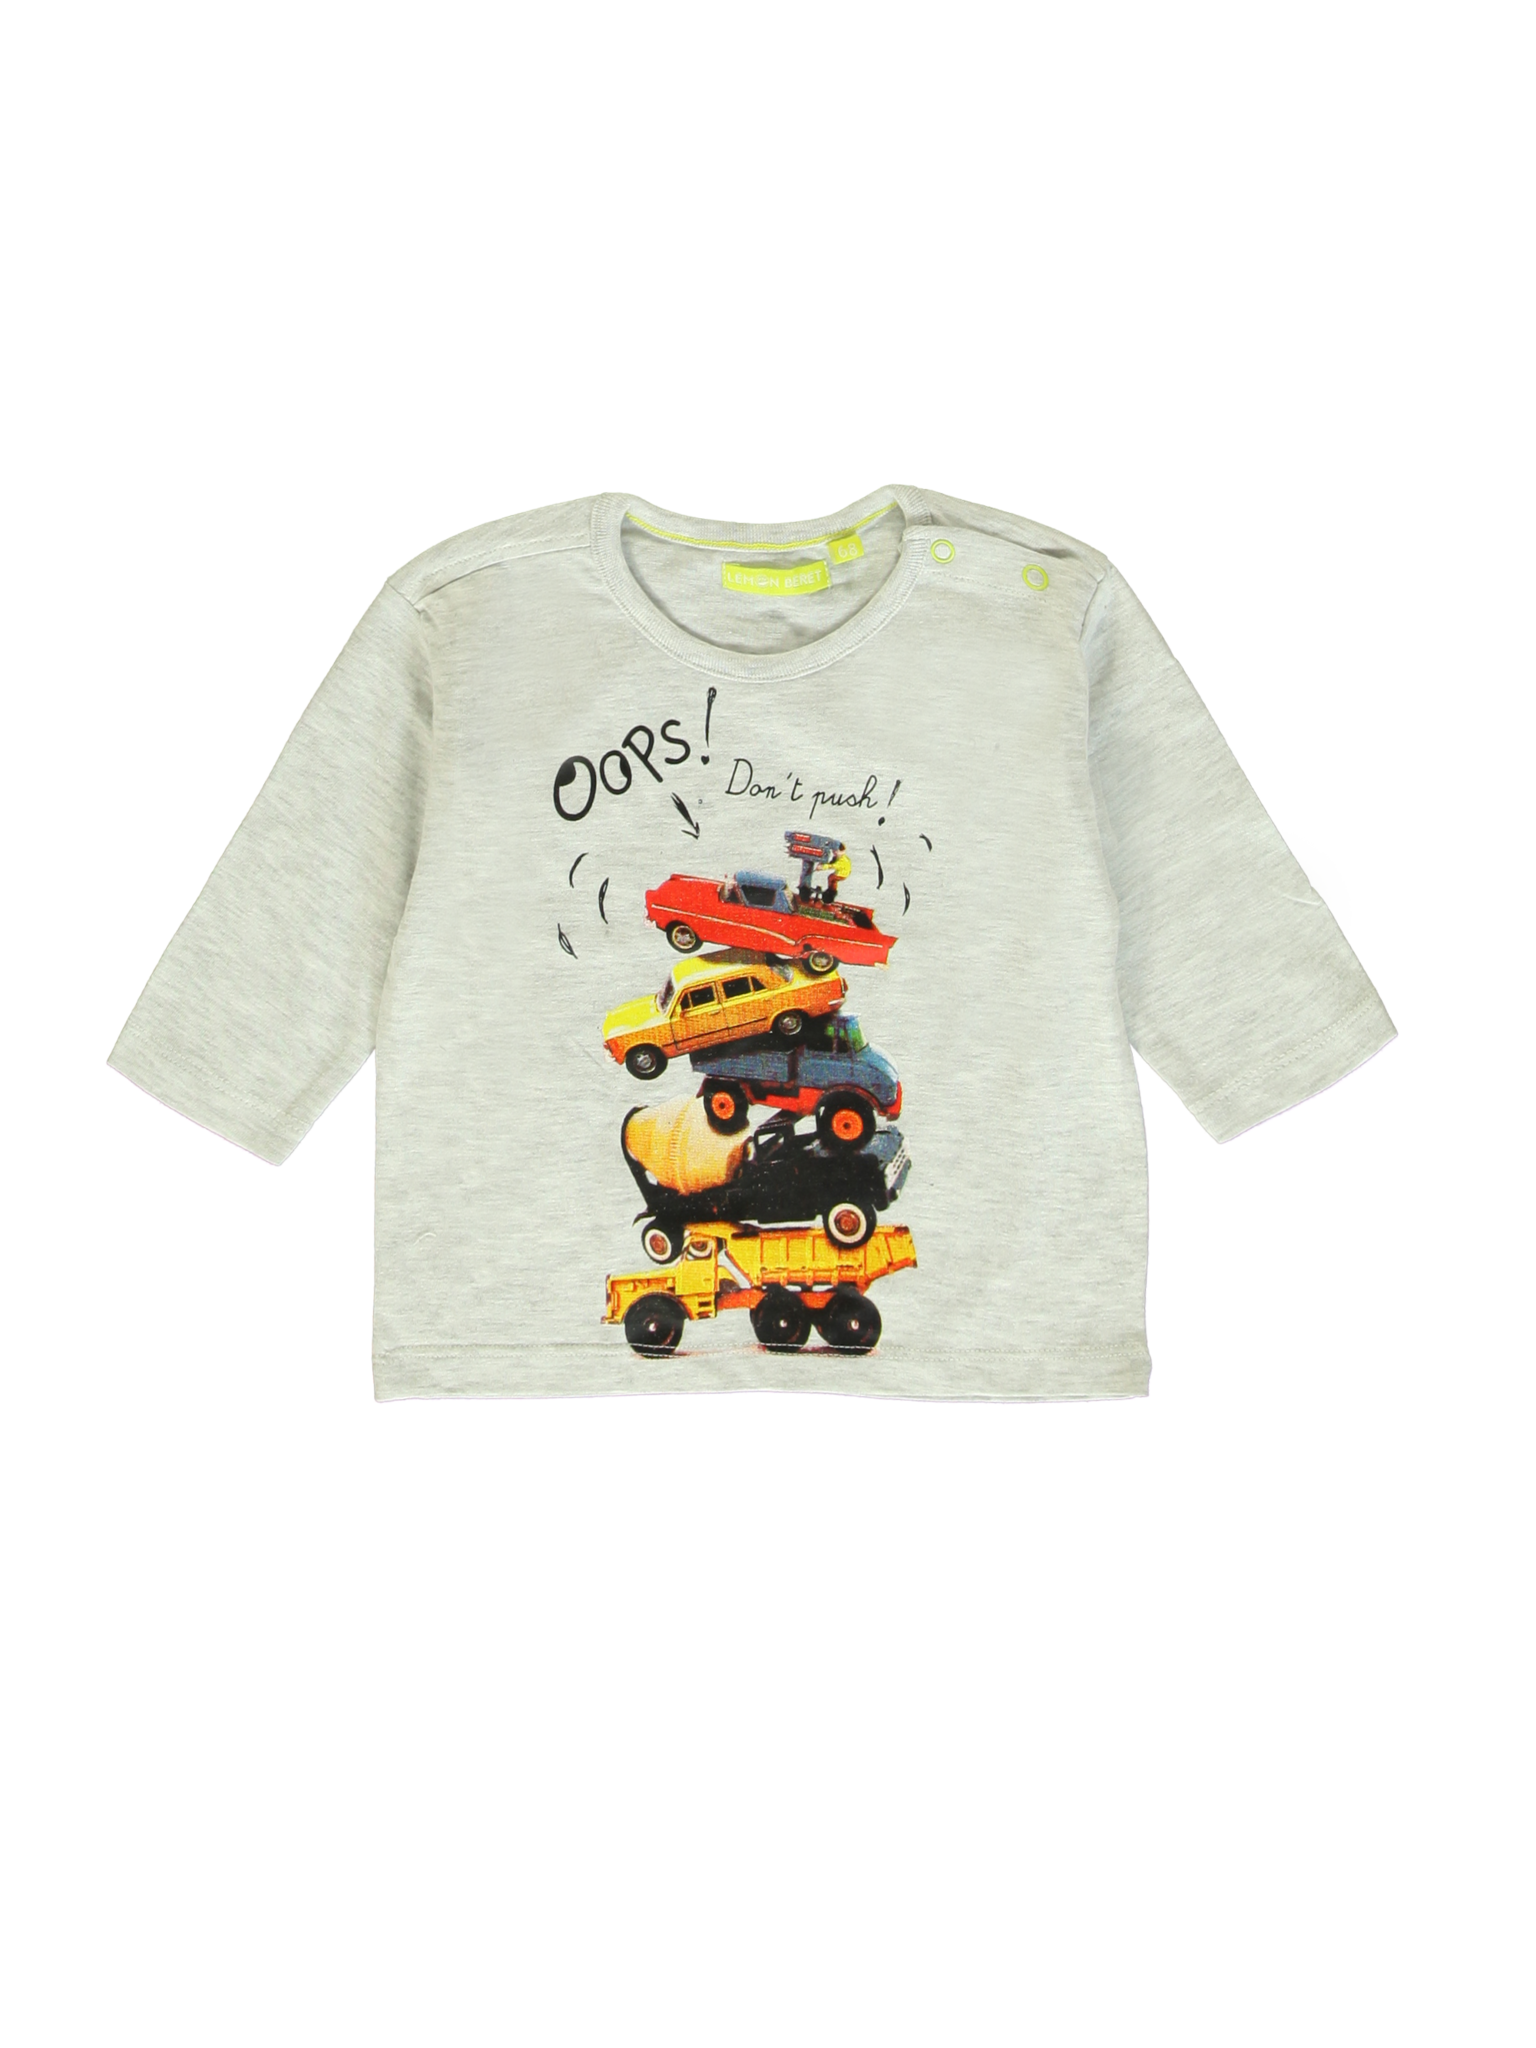 All Brands | Winterproducts Baby | T-shirt | 8 pcs/box